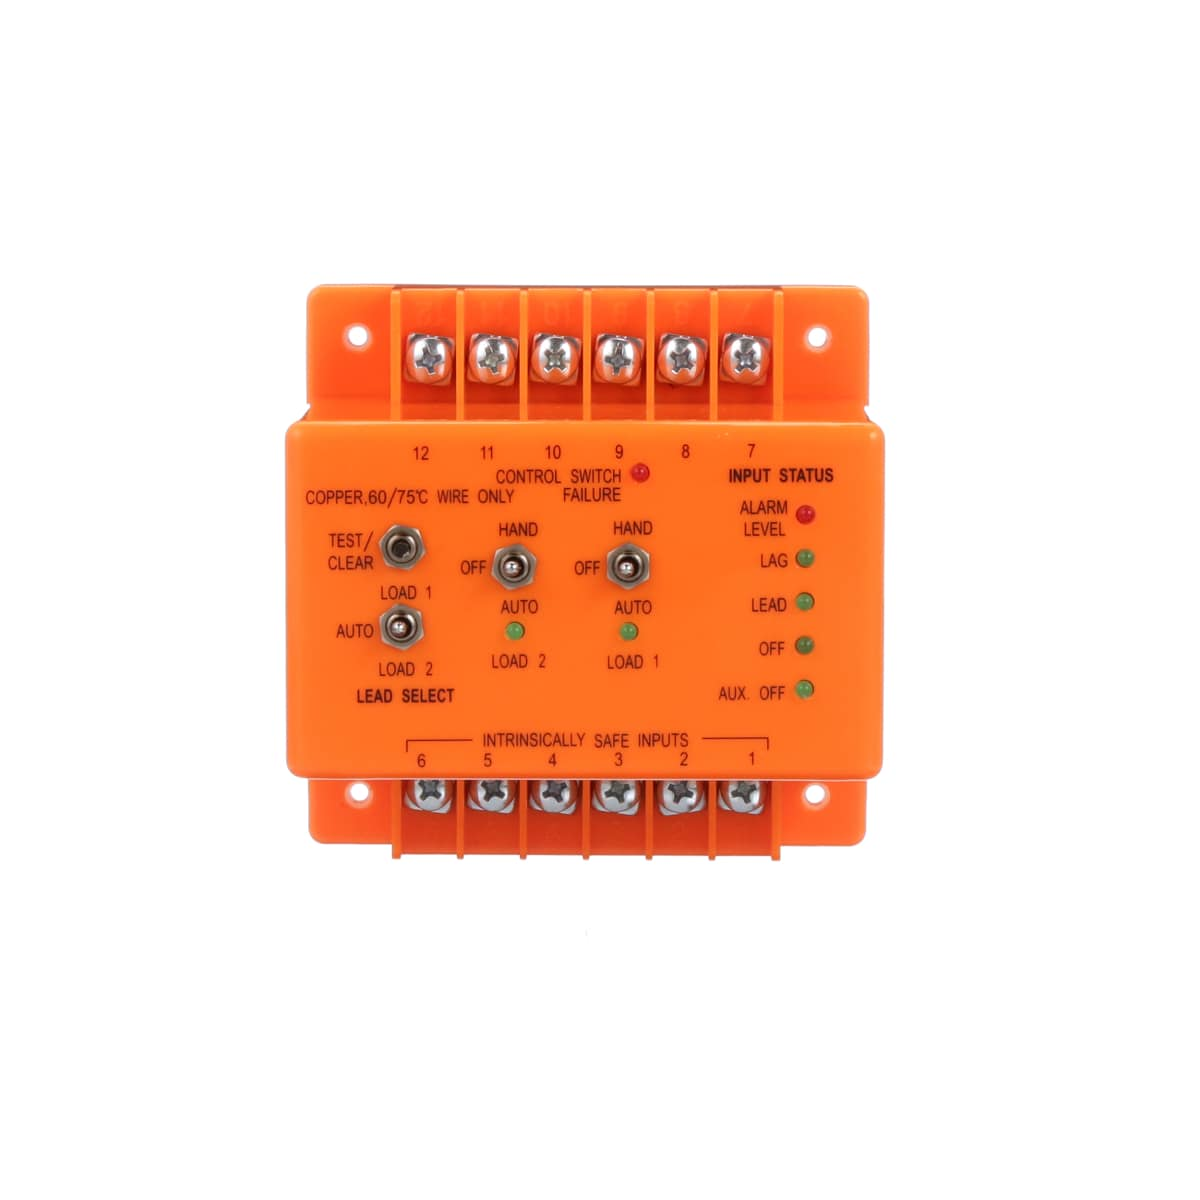 Atc Diversified Electronics Arm 120 Afe Relay Seri Dual Batteryvariableresistorcircuitnov2012p23q4png Close